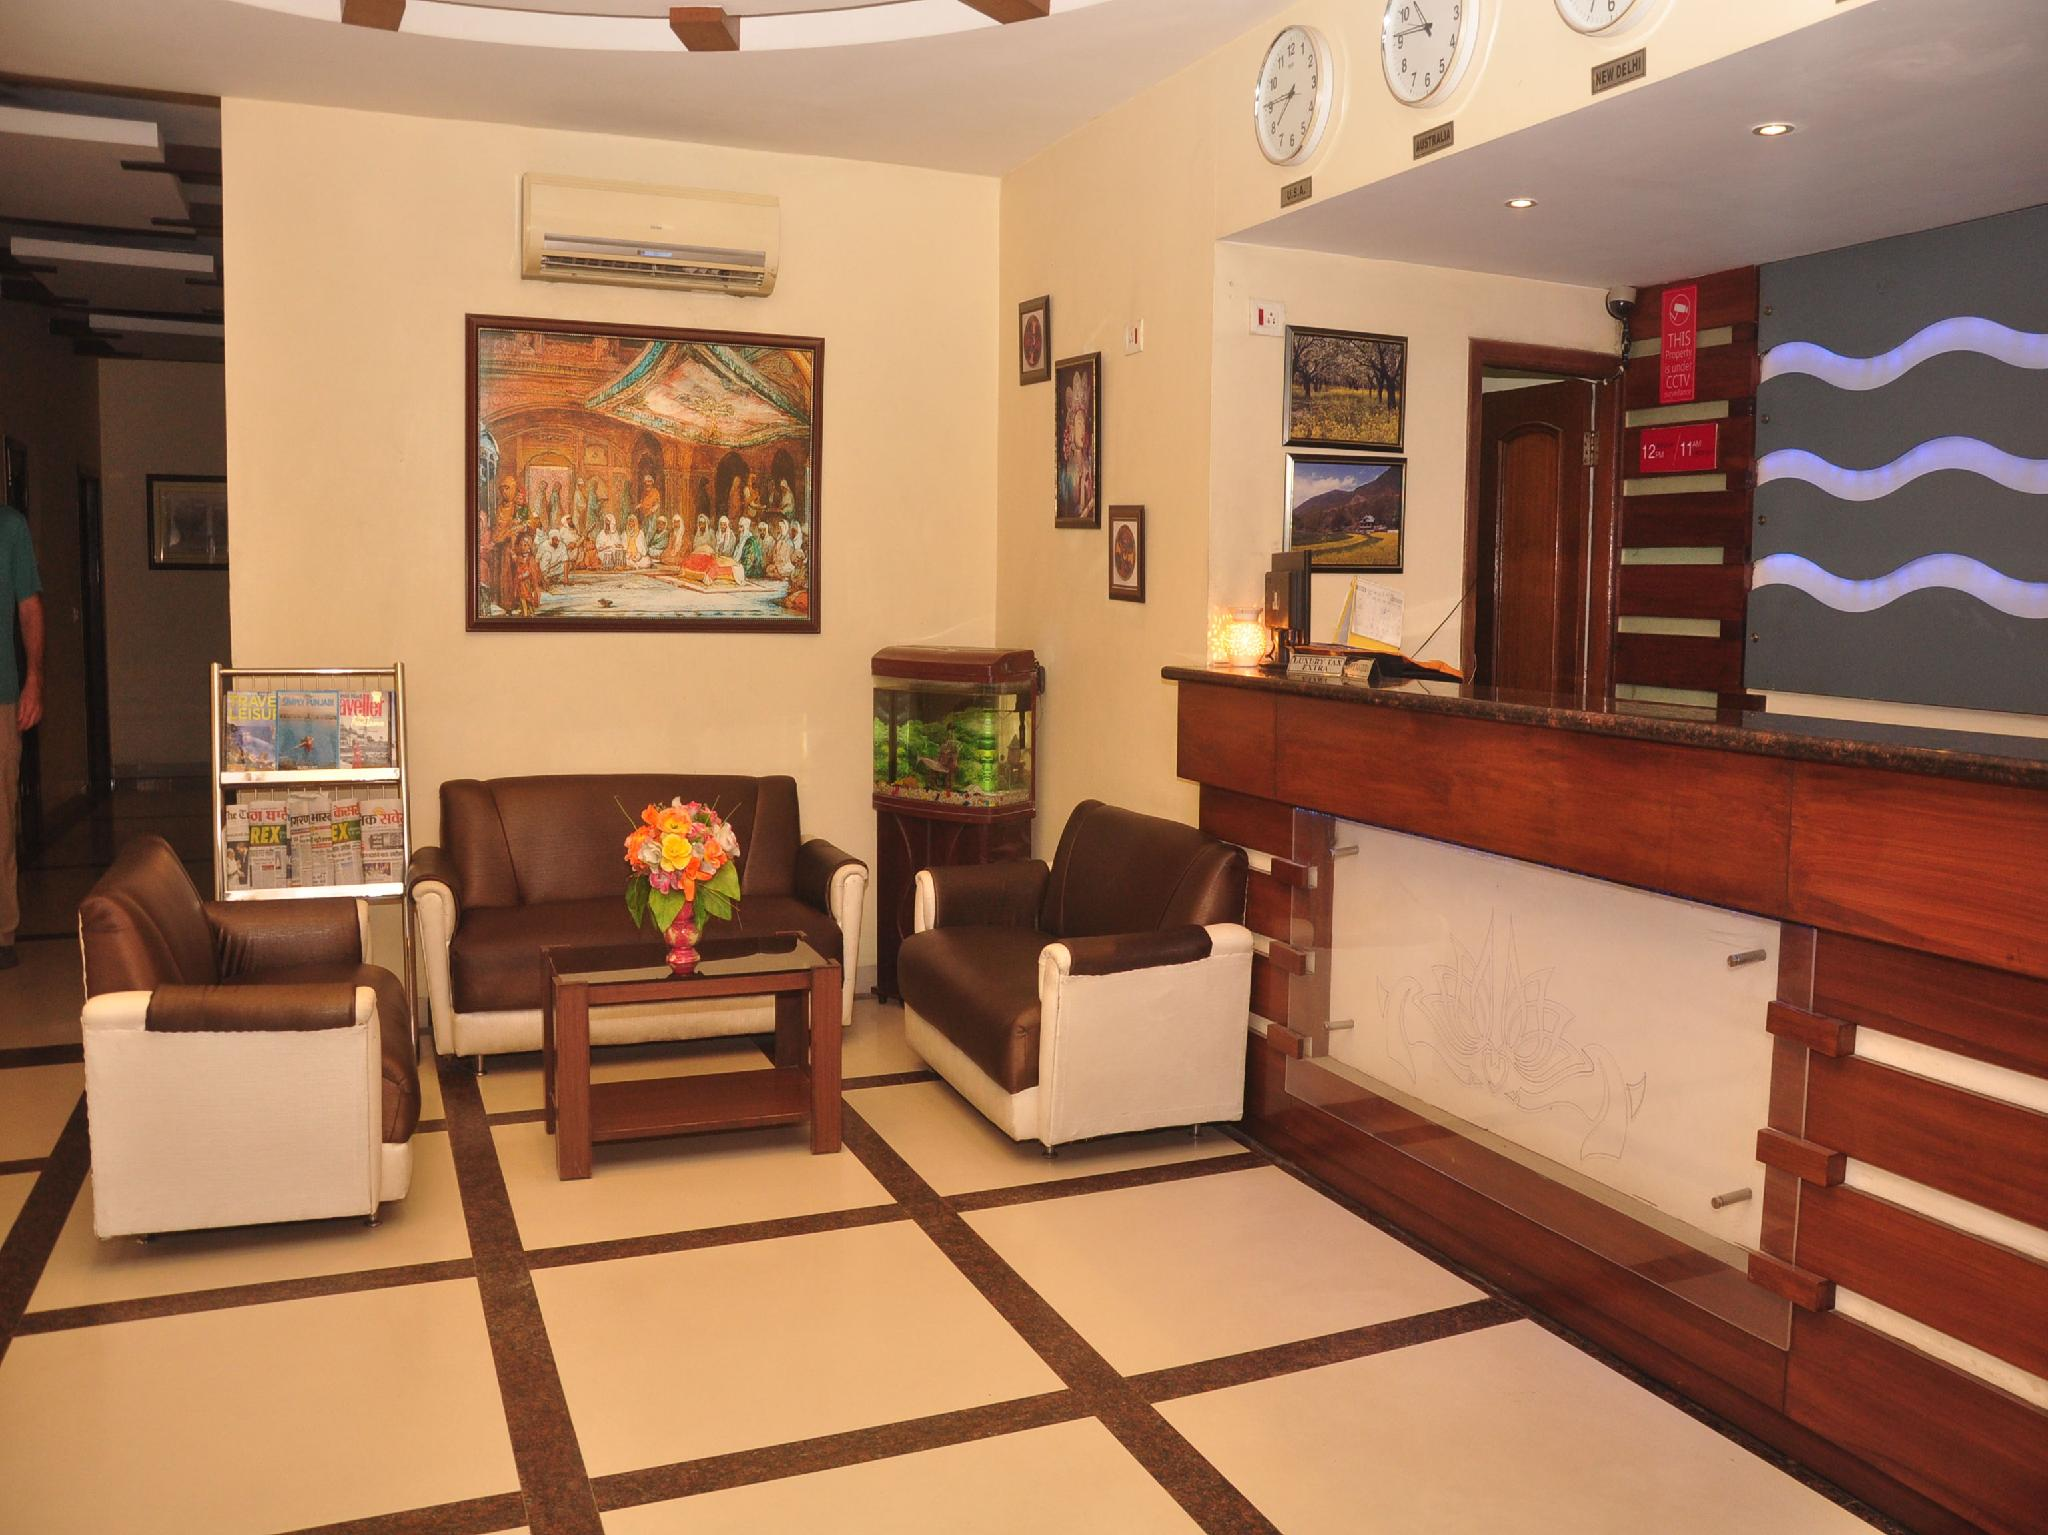 Oyo Rooms Mai Sewan Bazar In Amritsar Room Deals Photos